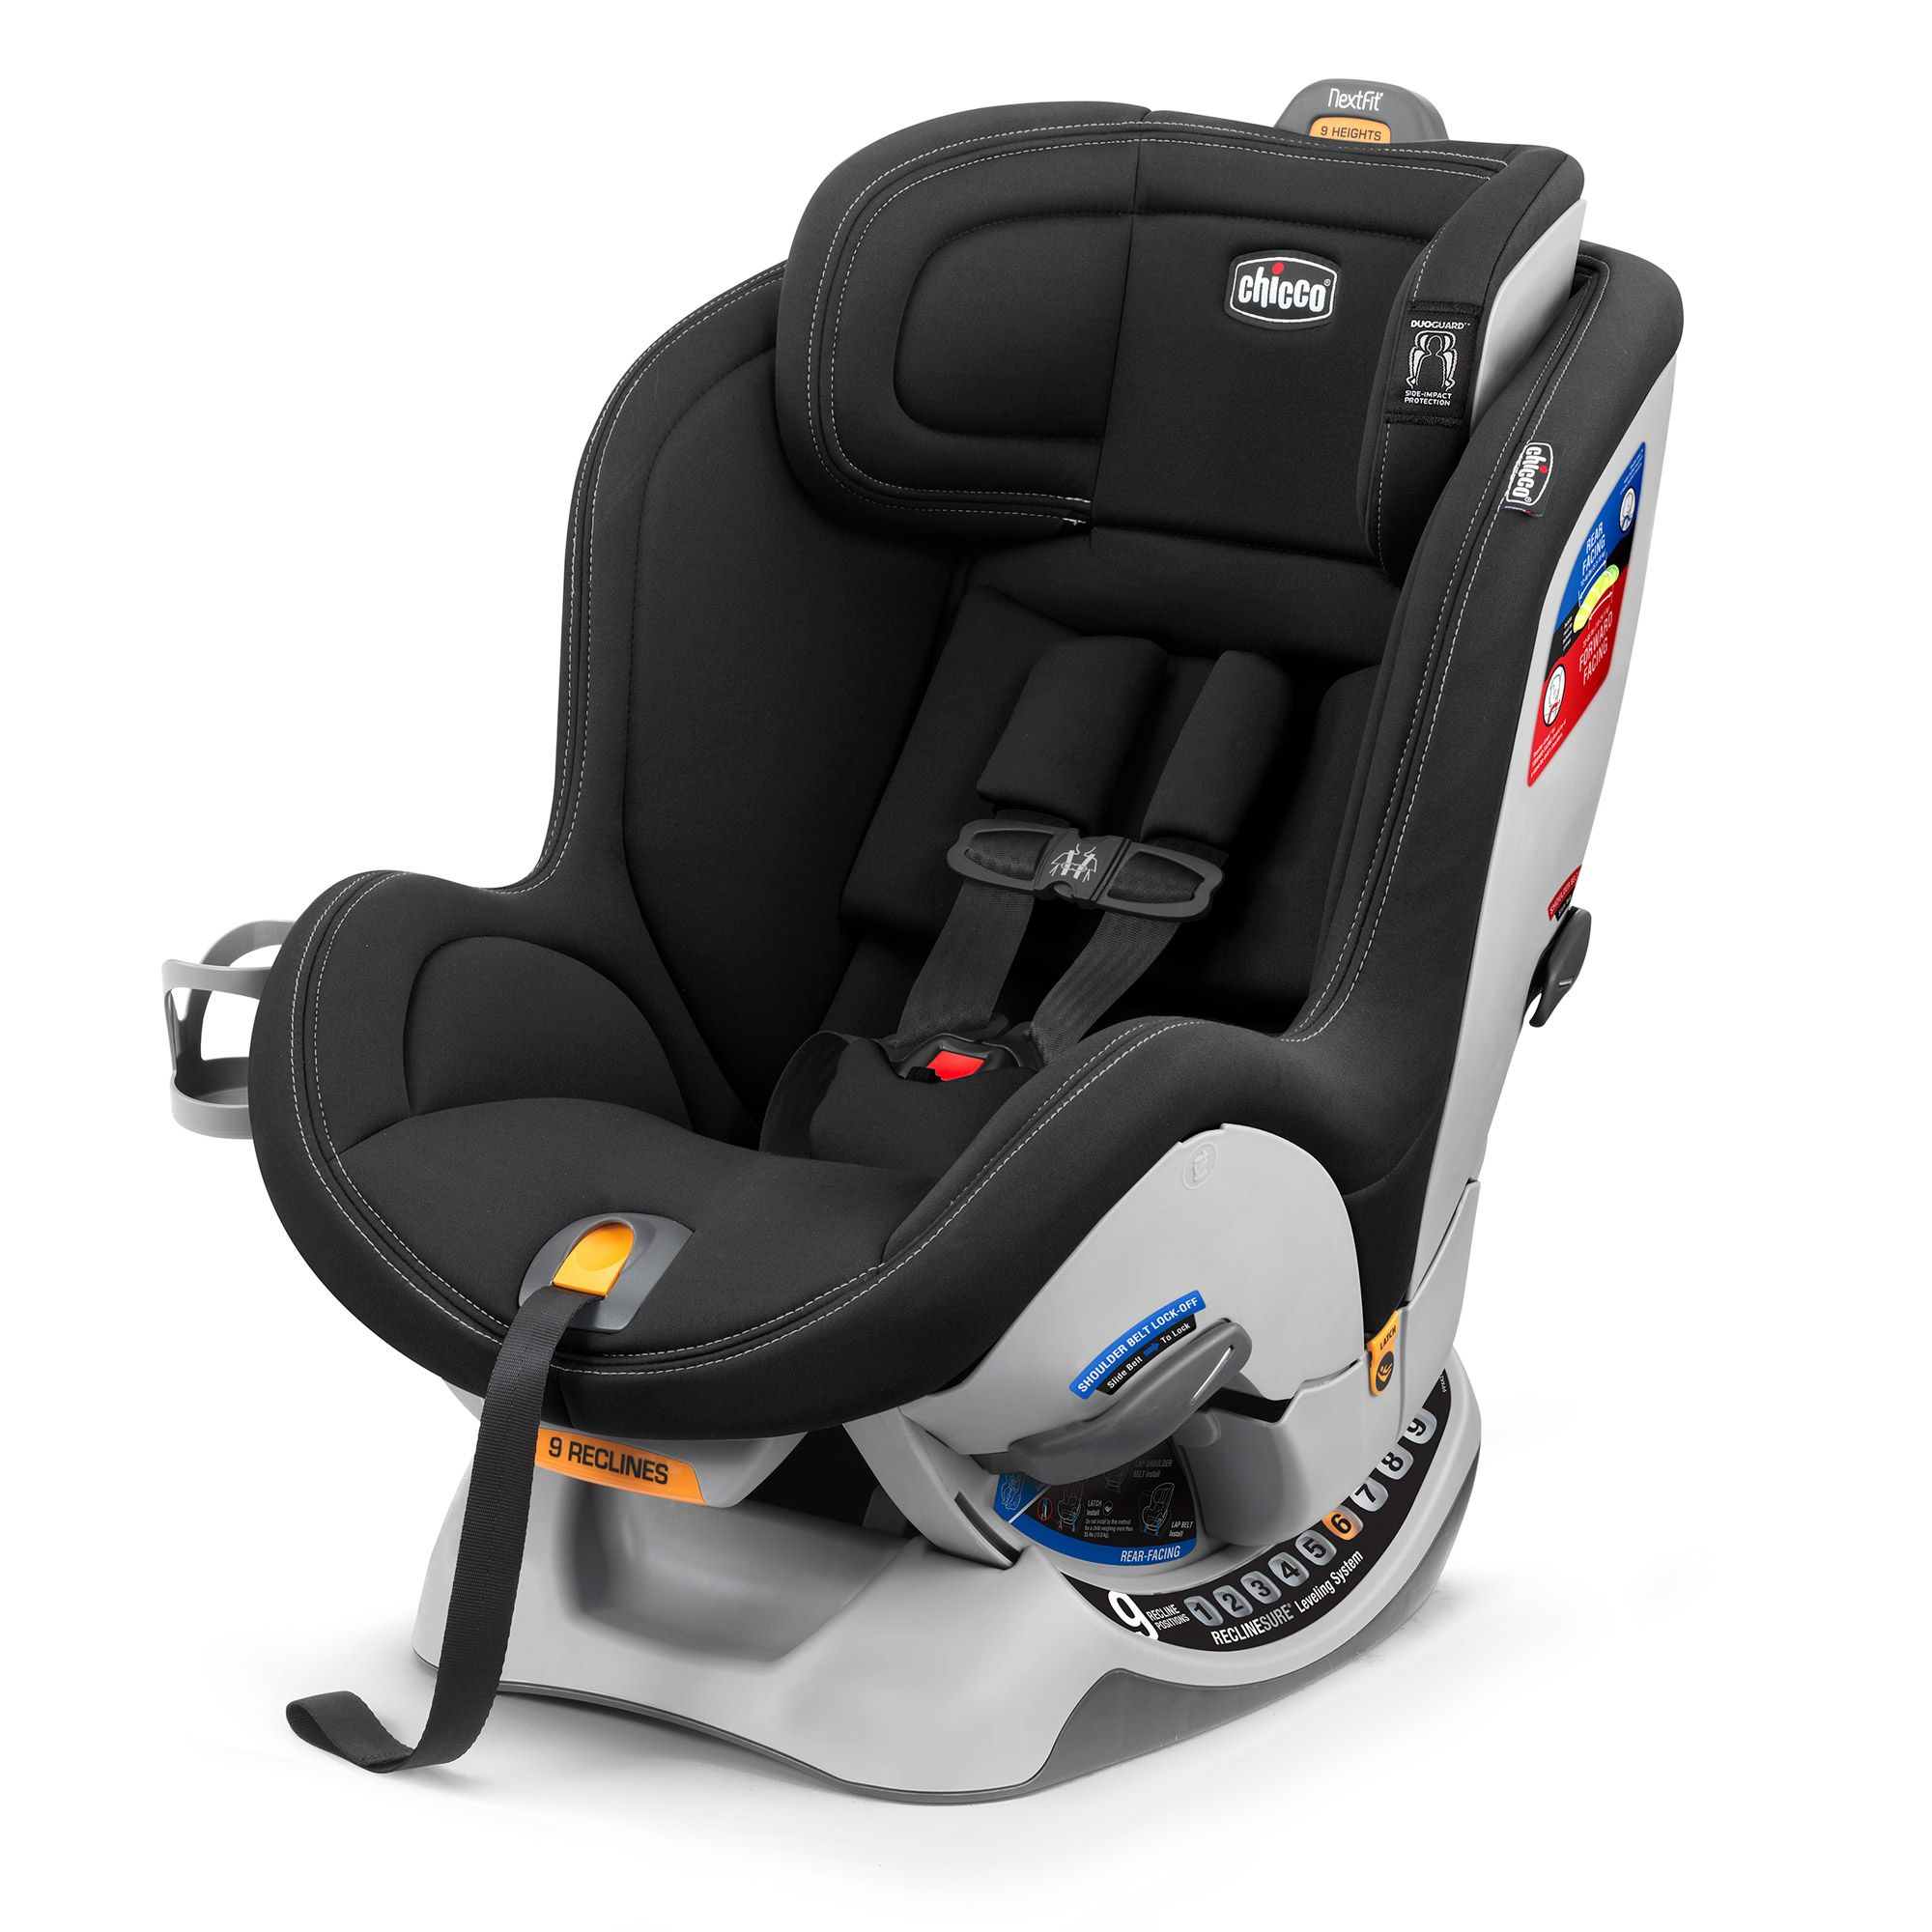 On The Go Style The Top Rated Chiccousa Nextfit Convertible Car Seat Arrives In The Sport Model Designed To Car Seats Convertible Car Seat Baby Travel Gear